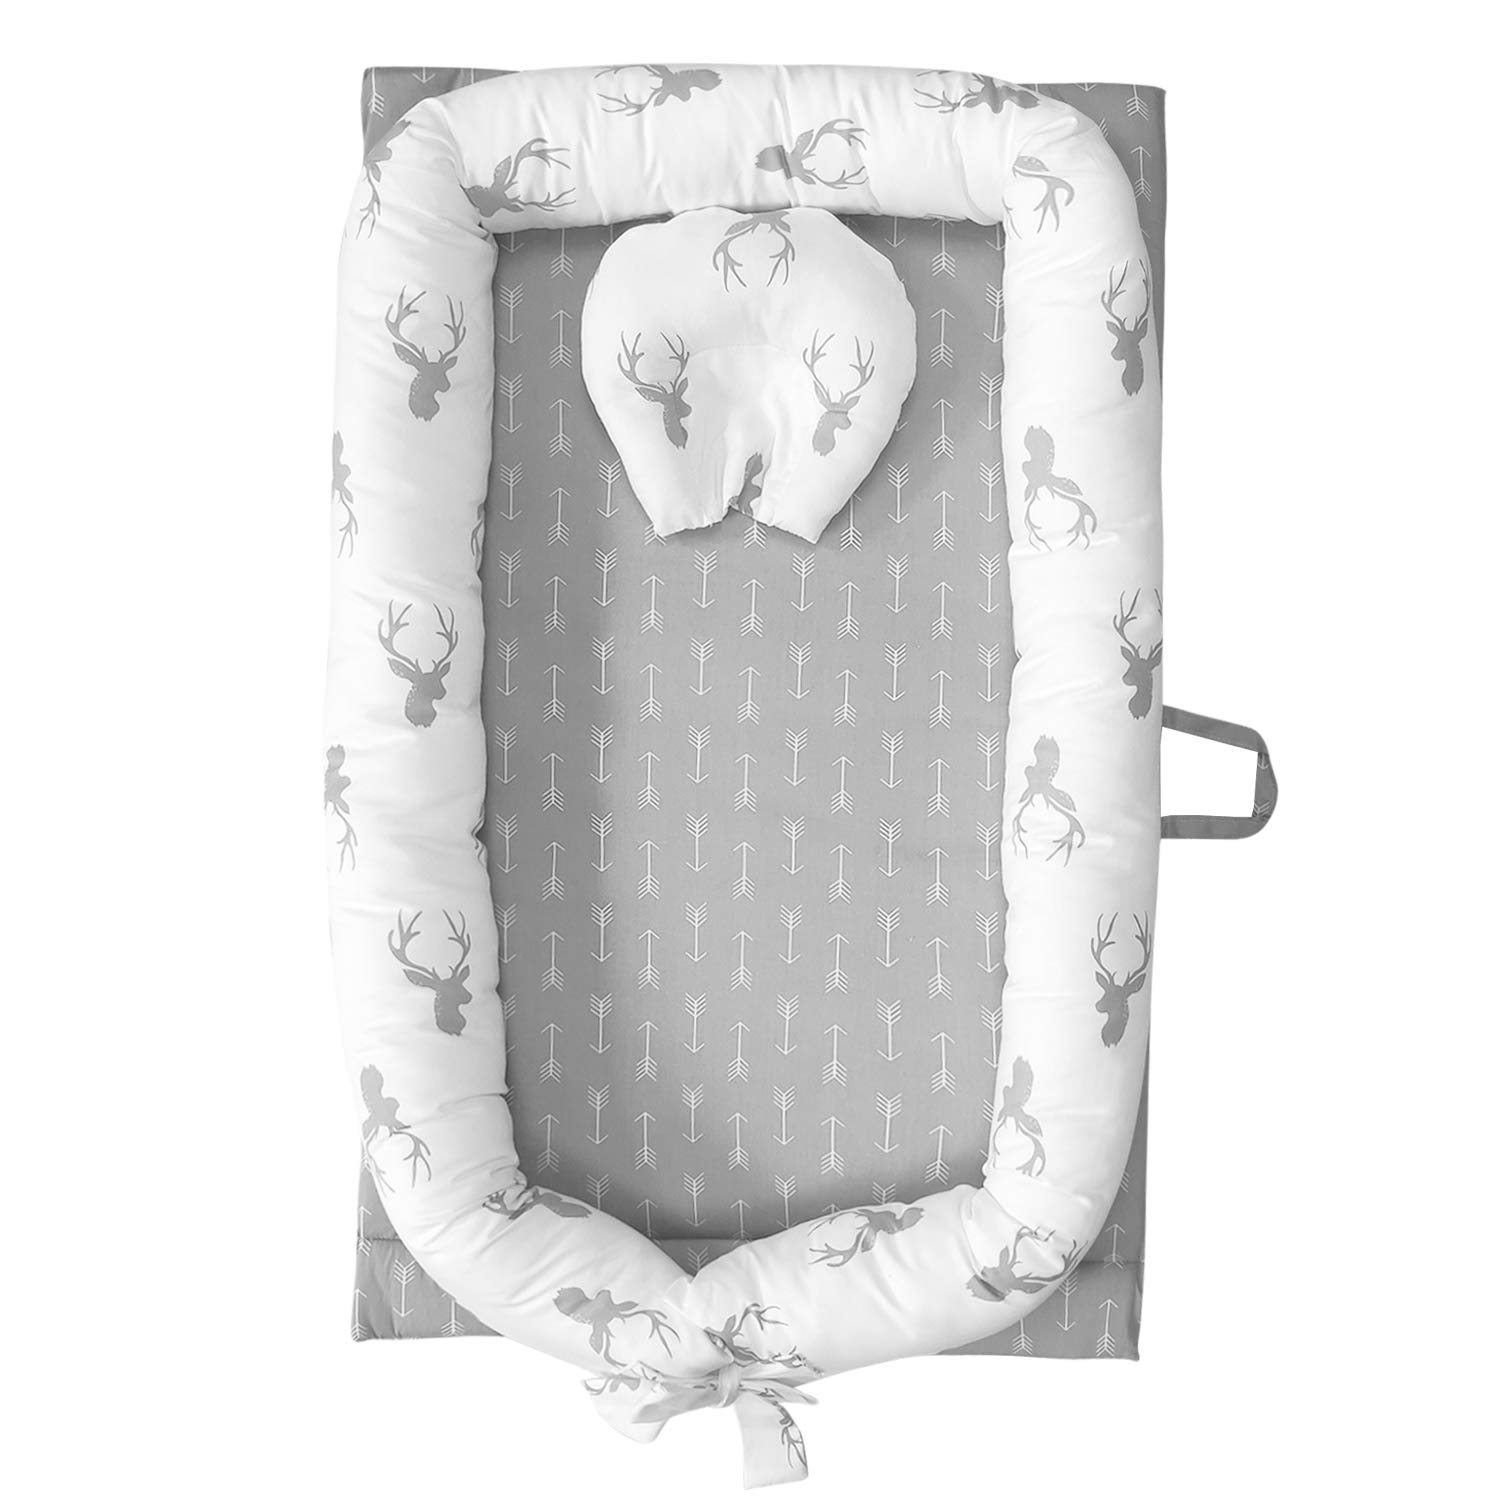 Abreeze Baby Bassinet for Bed -Christmas Elk Baby Lounger - Breathable & Hypoallergenic Co-Sleeping Baby Bed - 100% Cotton Portable Crib for Bedroom/Travel 0-24 Months